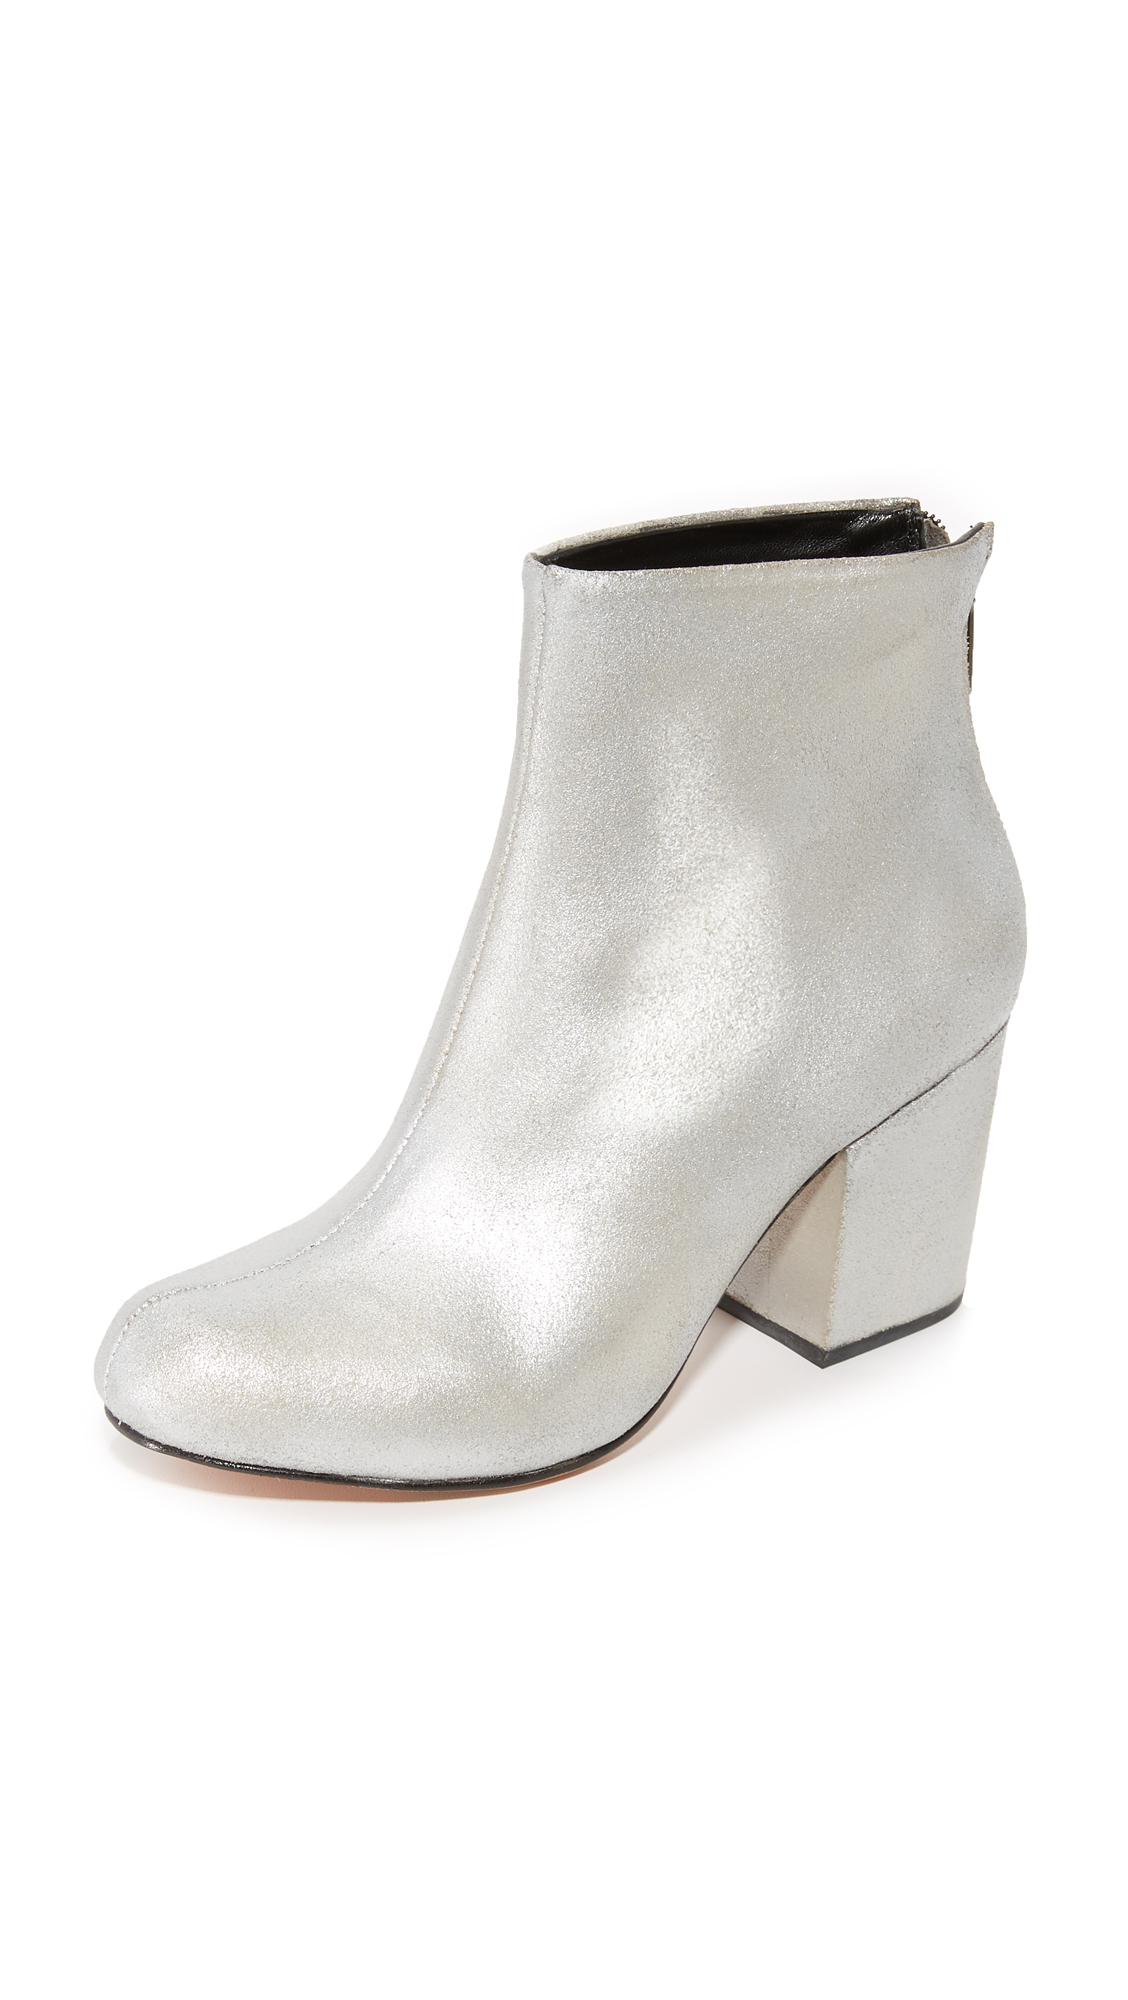 Rachel Comey Tilden Booties - Distressed Silver